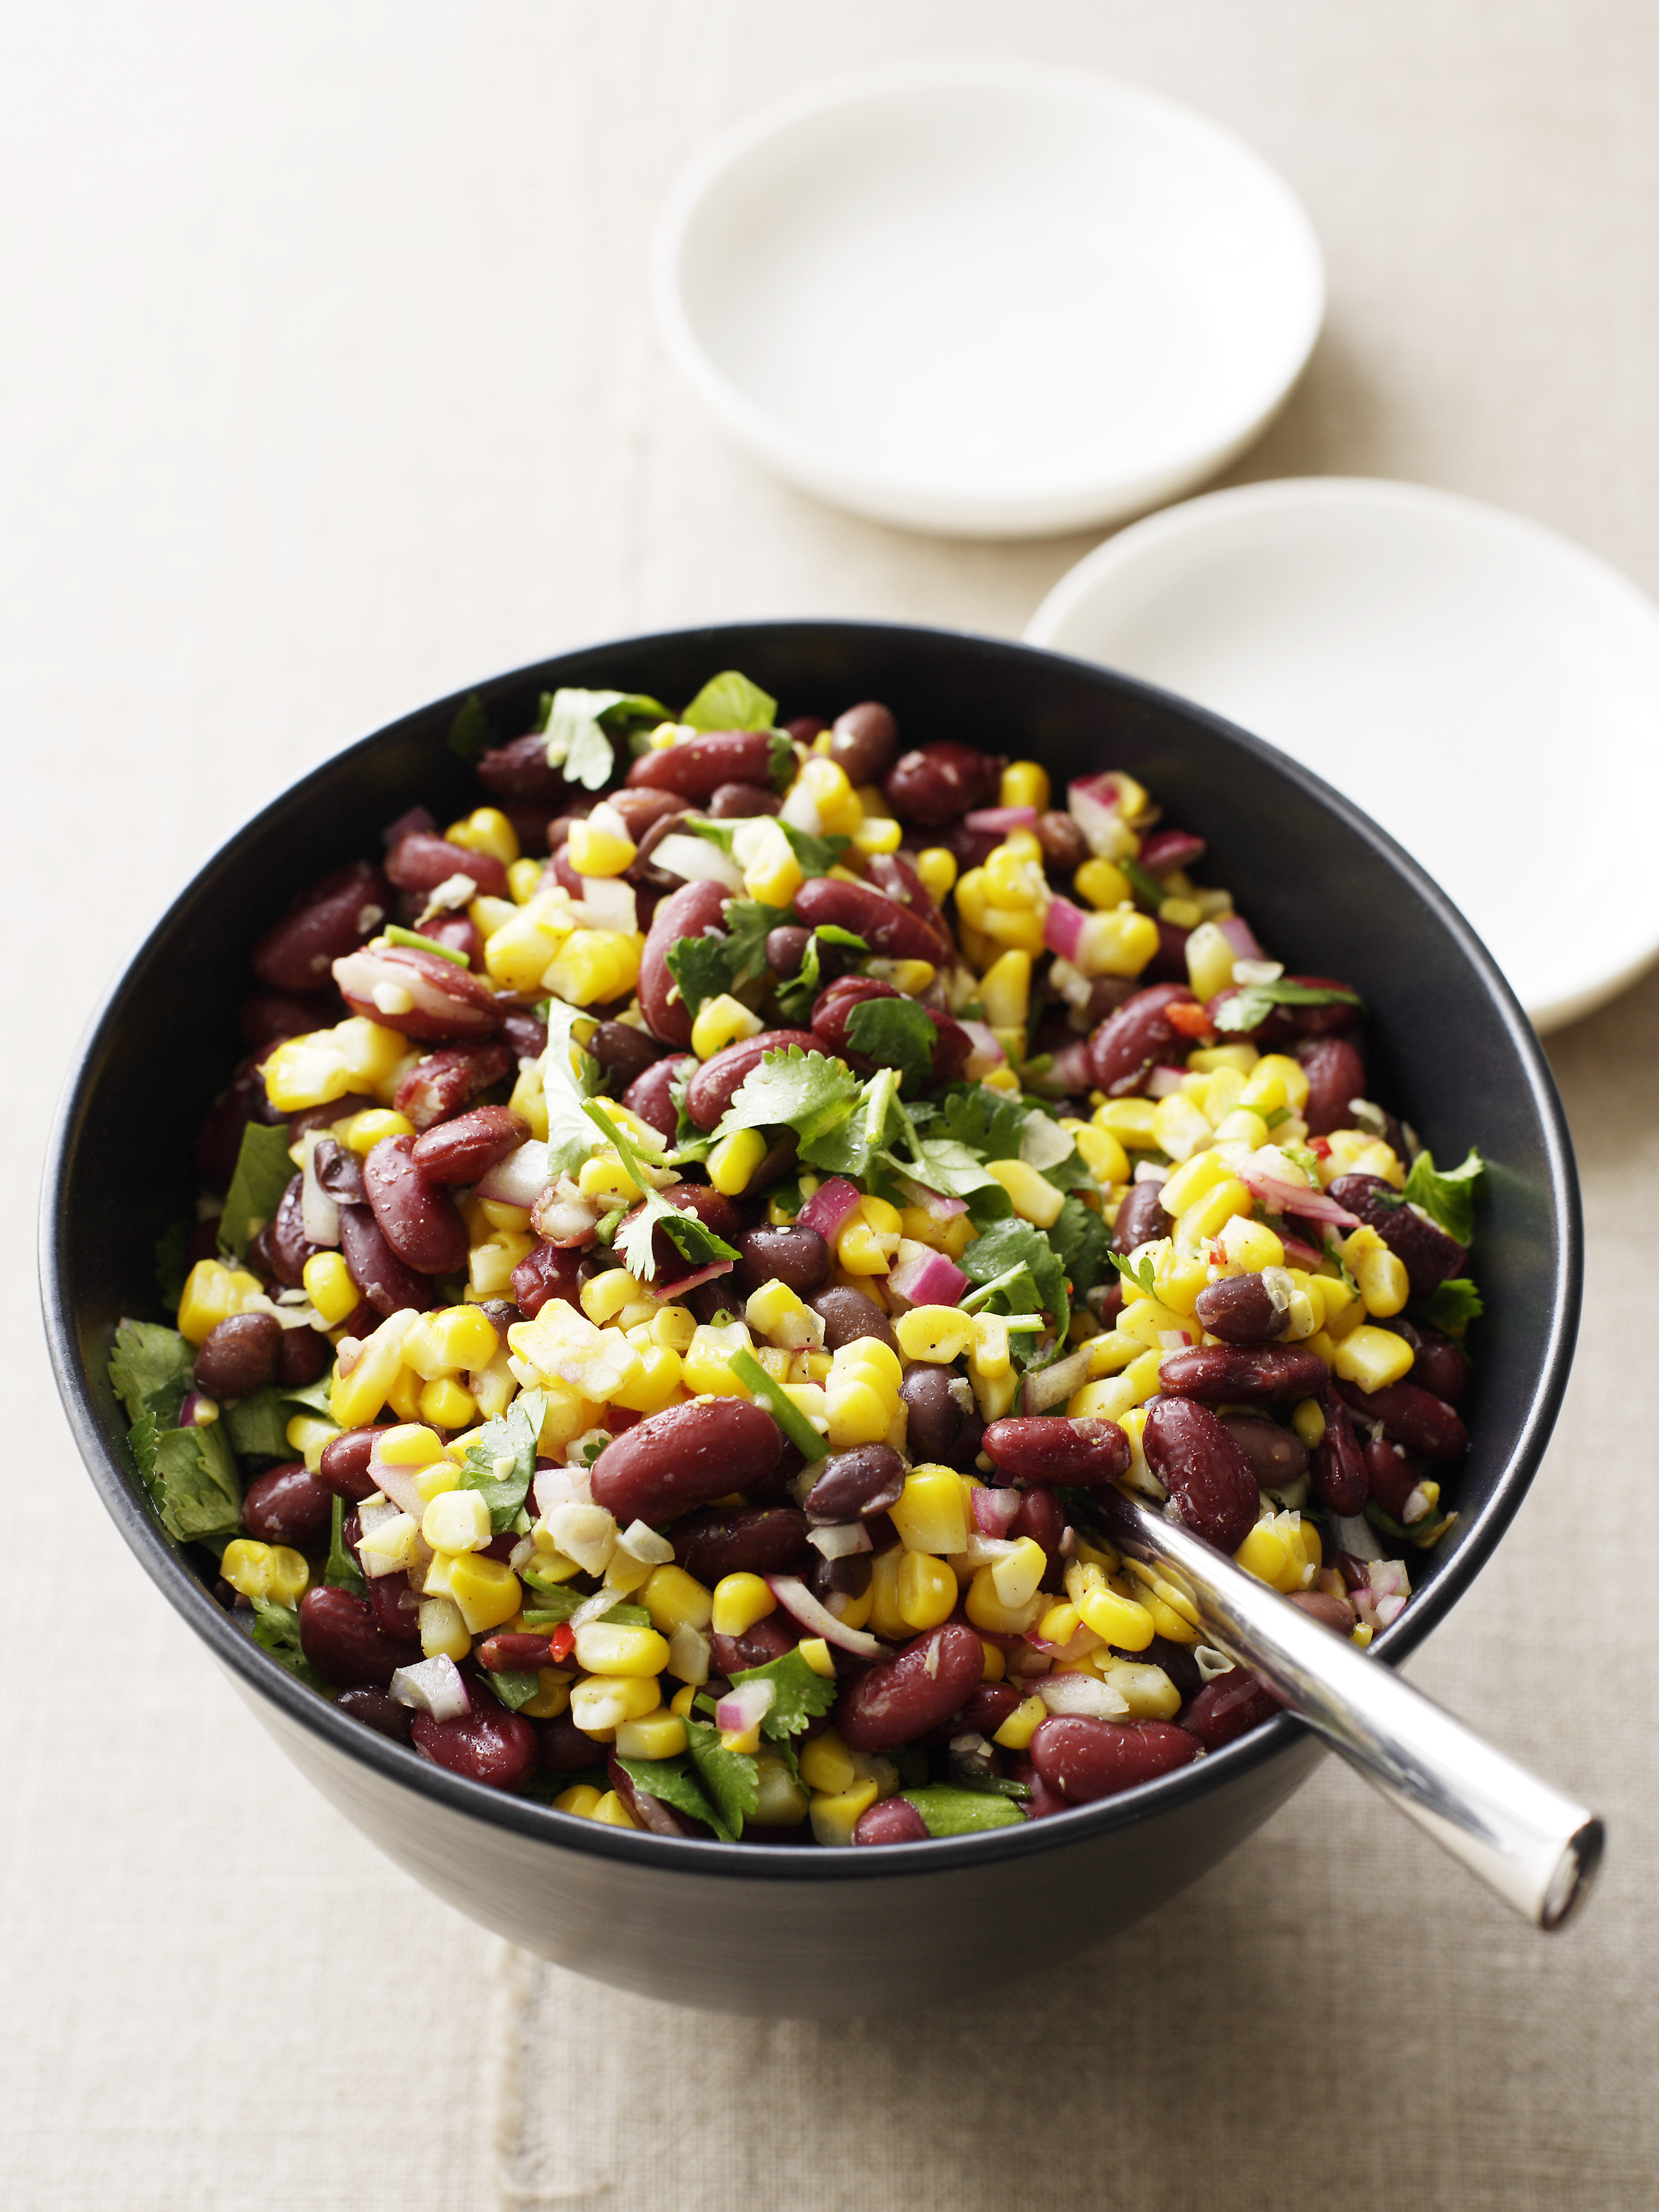 why gain weight on bean and rice diet?